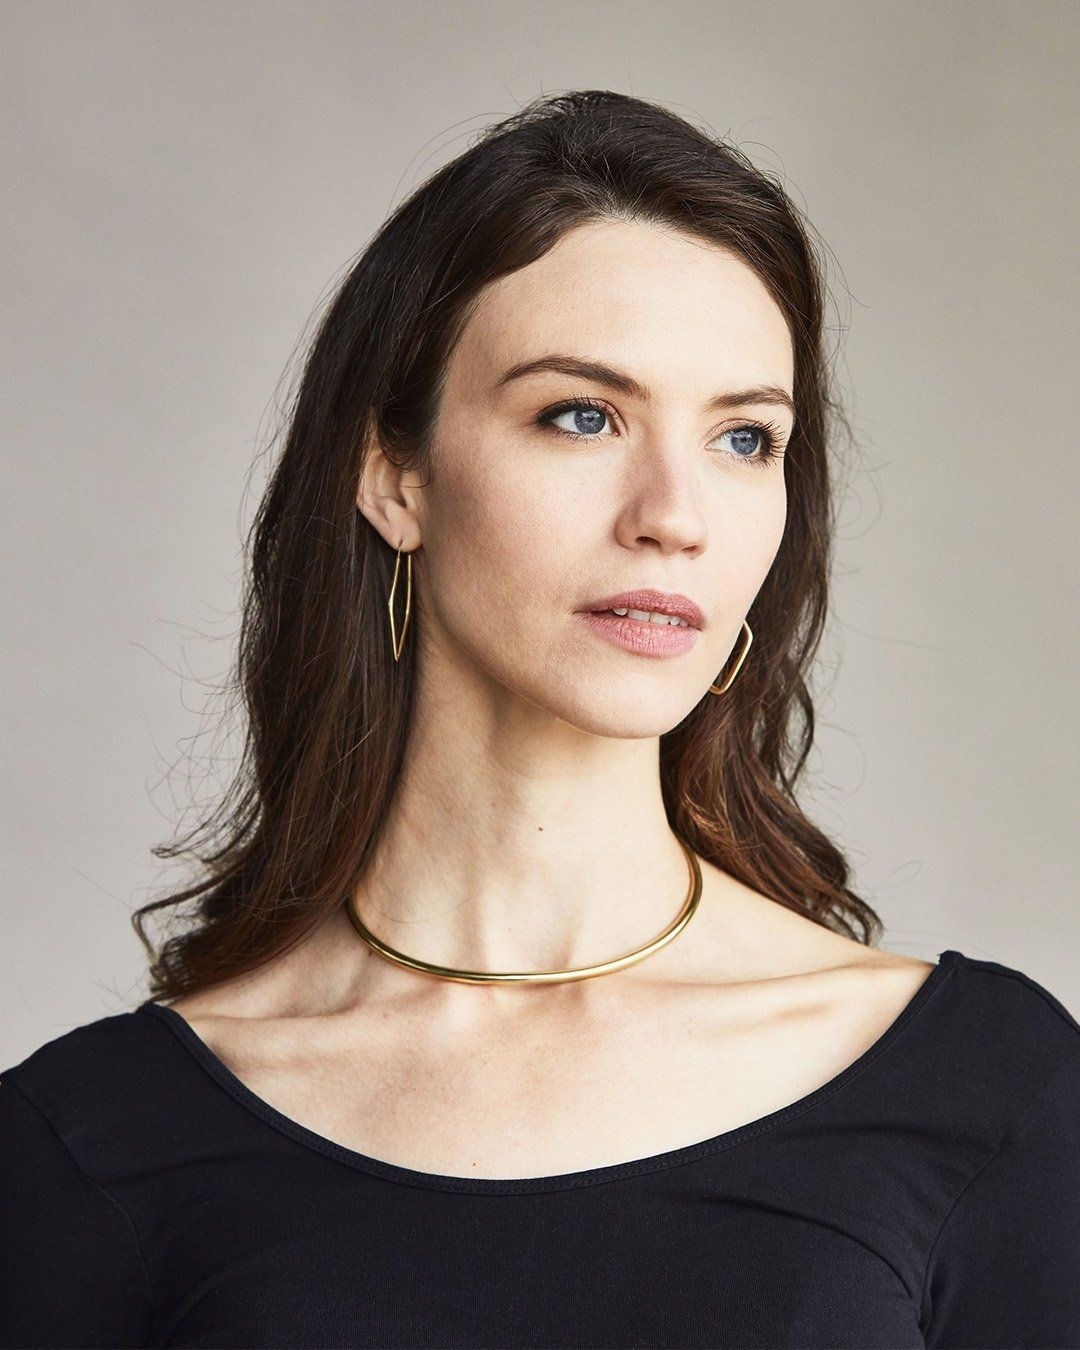 A model wearing the necklace